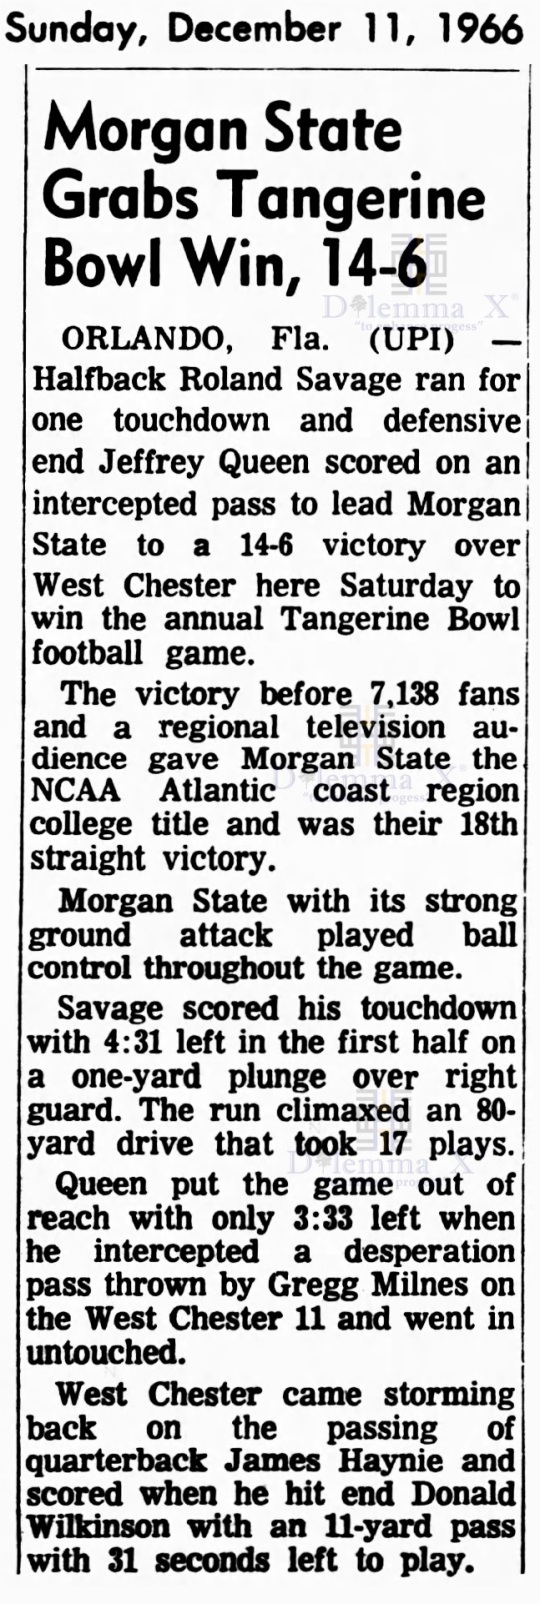 tangerine-bowl-1966 Morgan State Wins